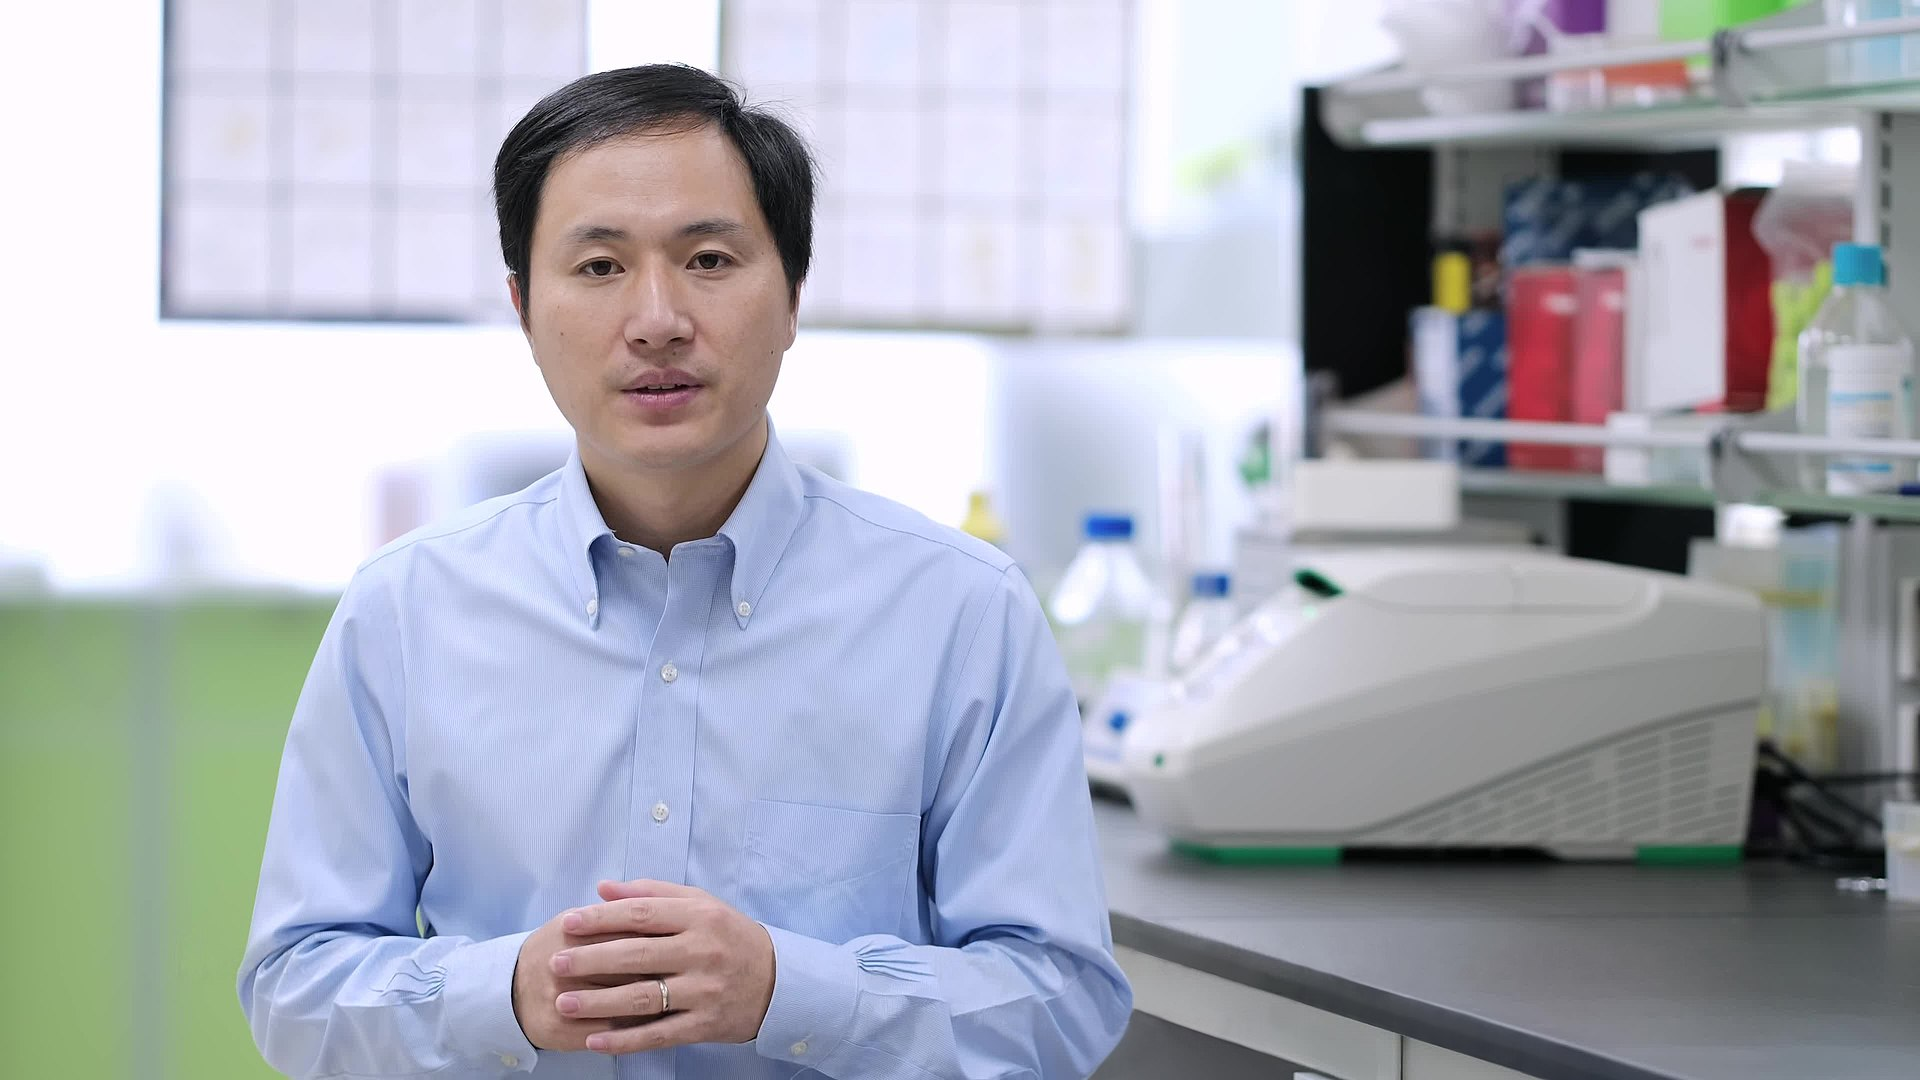 He_Jiankui By The He Lab - This file has been extracted from another file - About Lulu and Nana- Twin Girls Born Healthy After Gene Surgery As Single-Cell Embryos.webmPlay